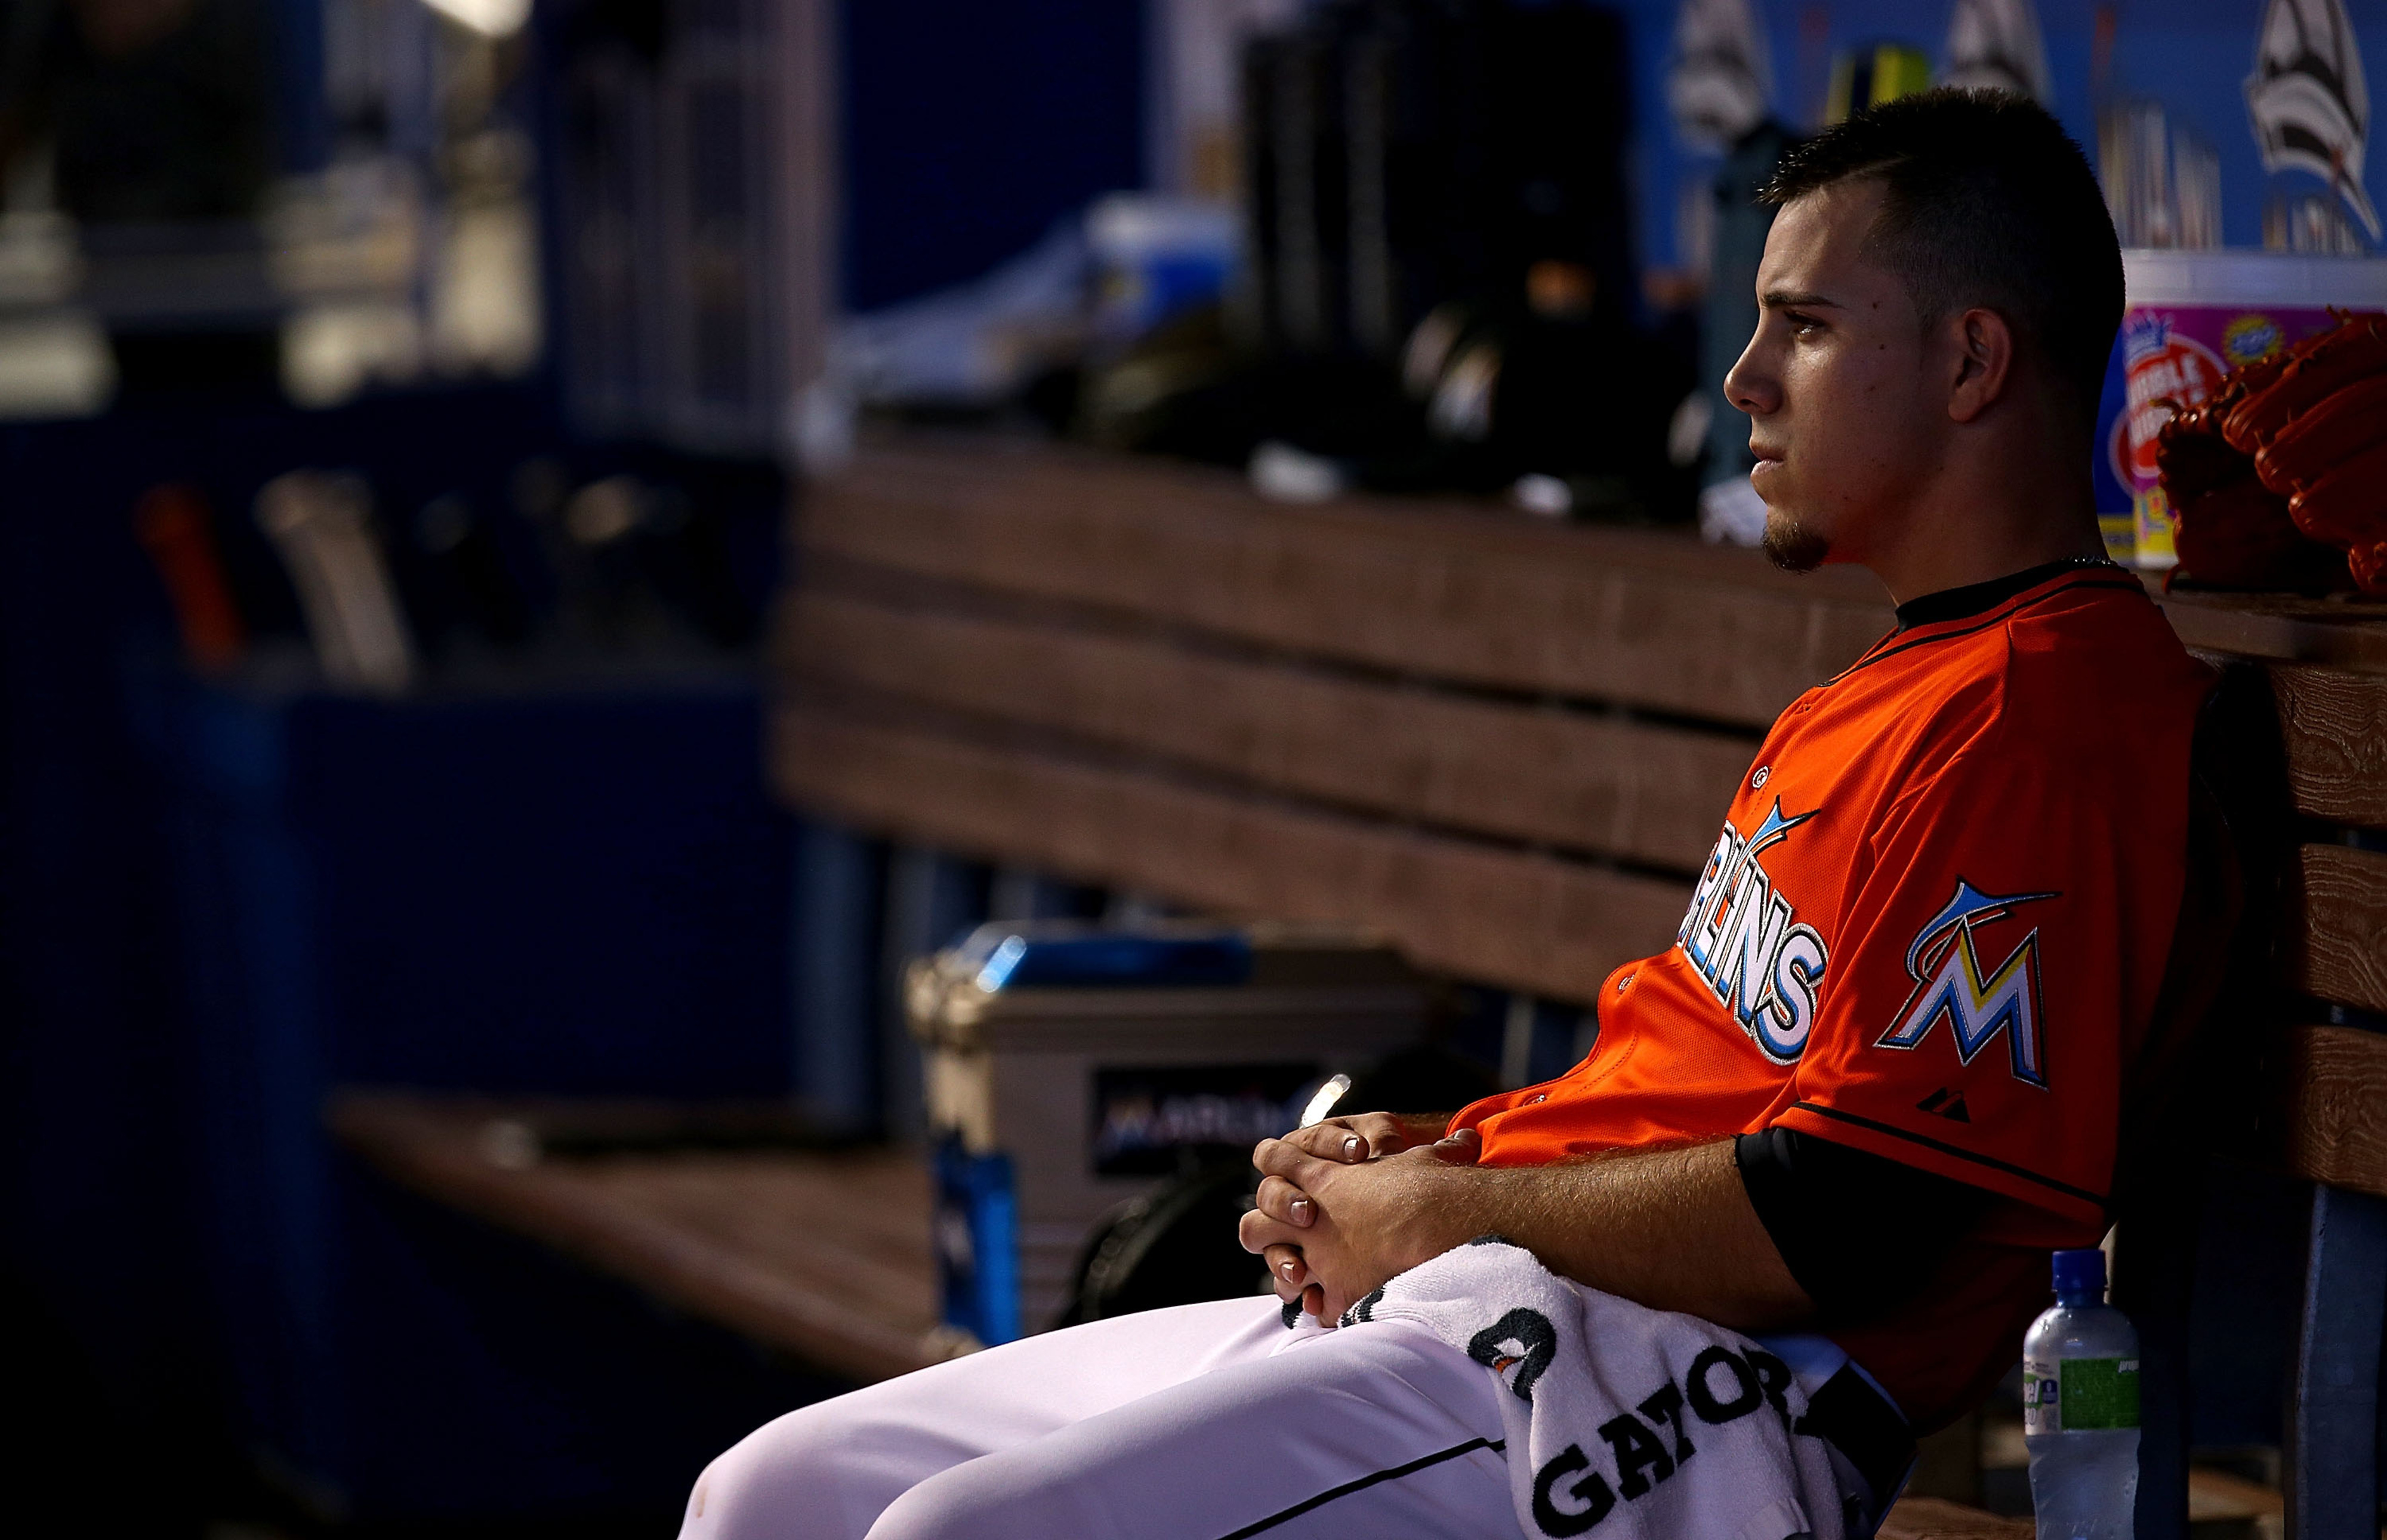 Jose Fernandez, sitting on his throne in Marlins Park, surveying his subjects.